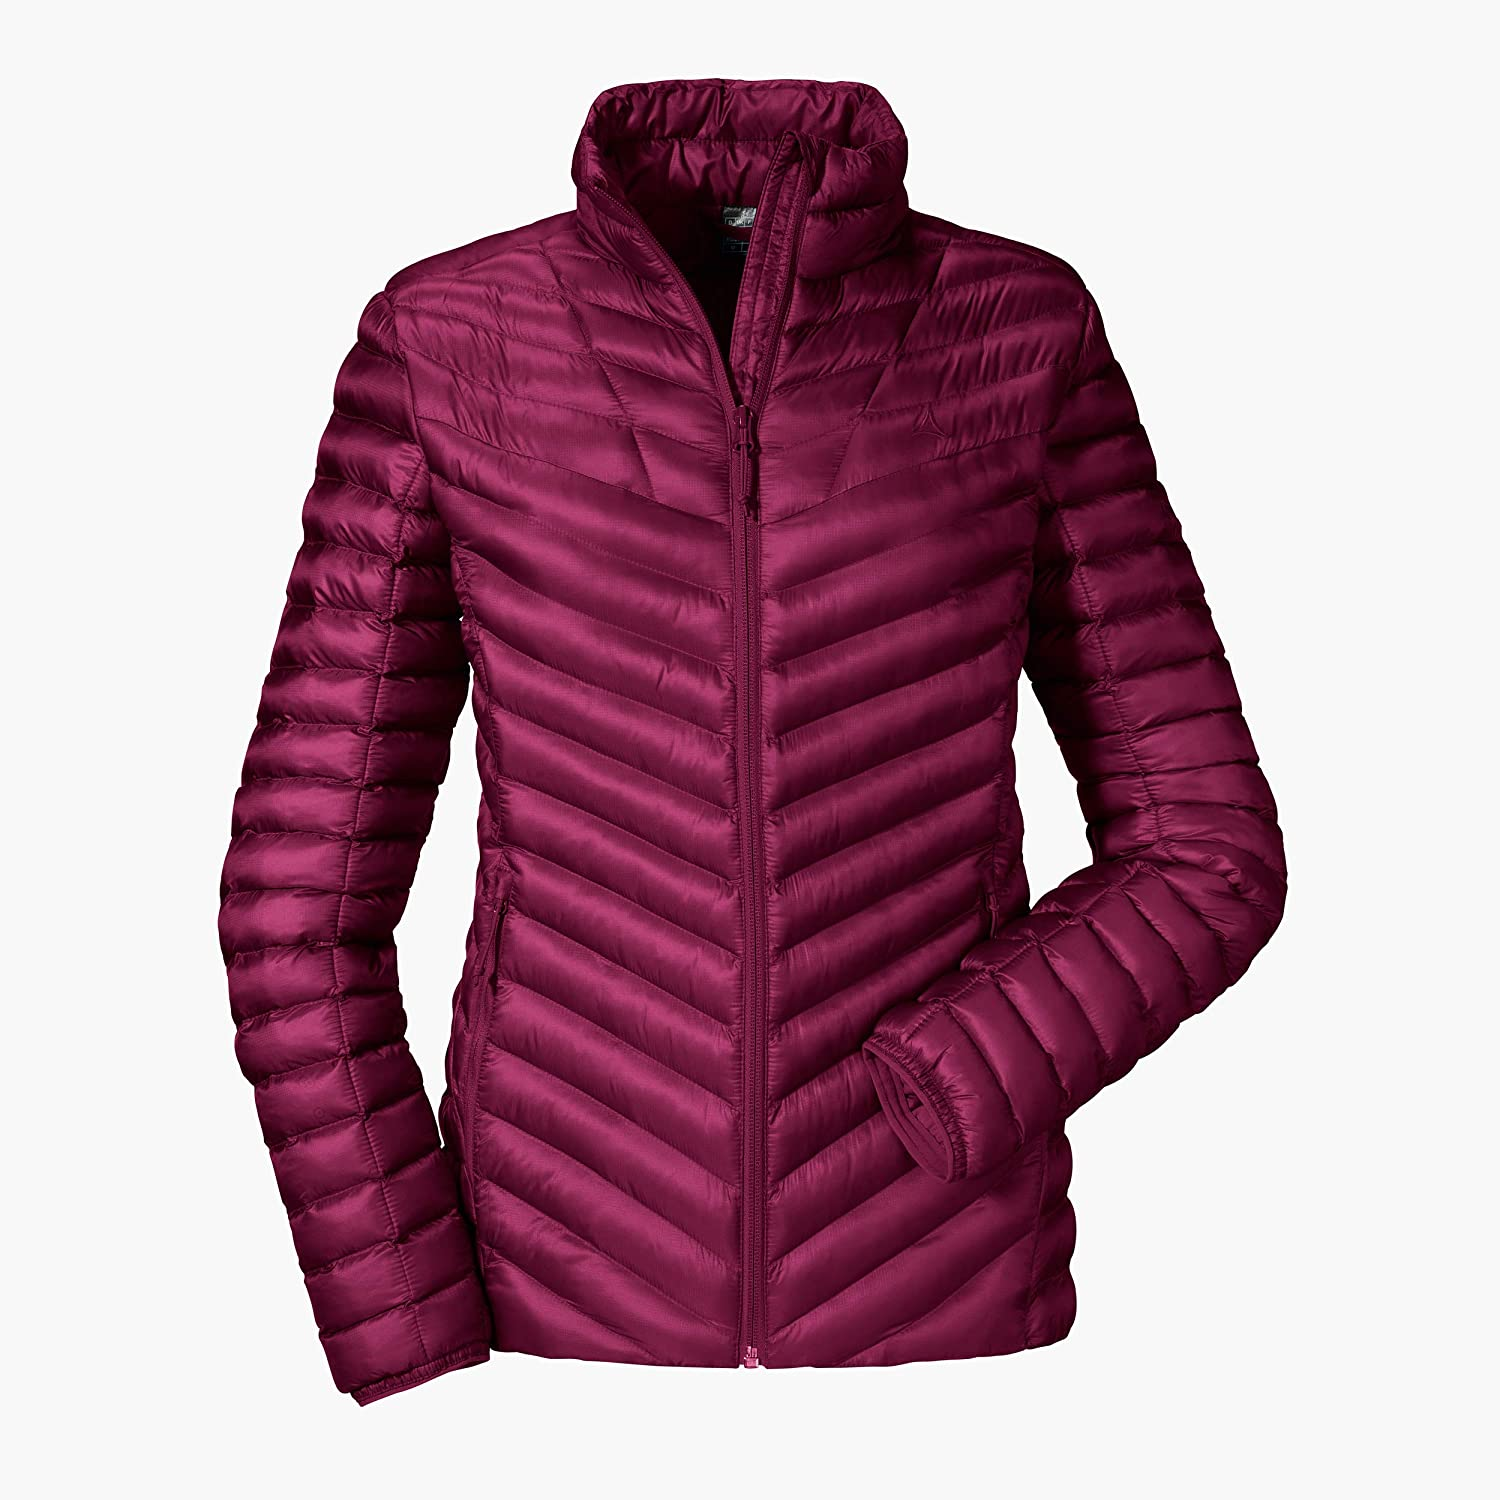 Schöffel Damen Thermo Jacket Annapolis1 Daunen-/ Thermojacken